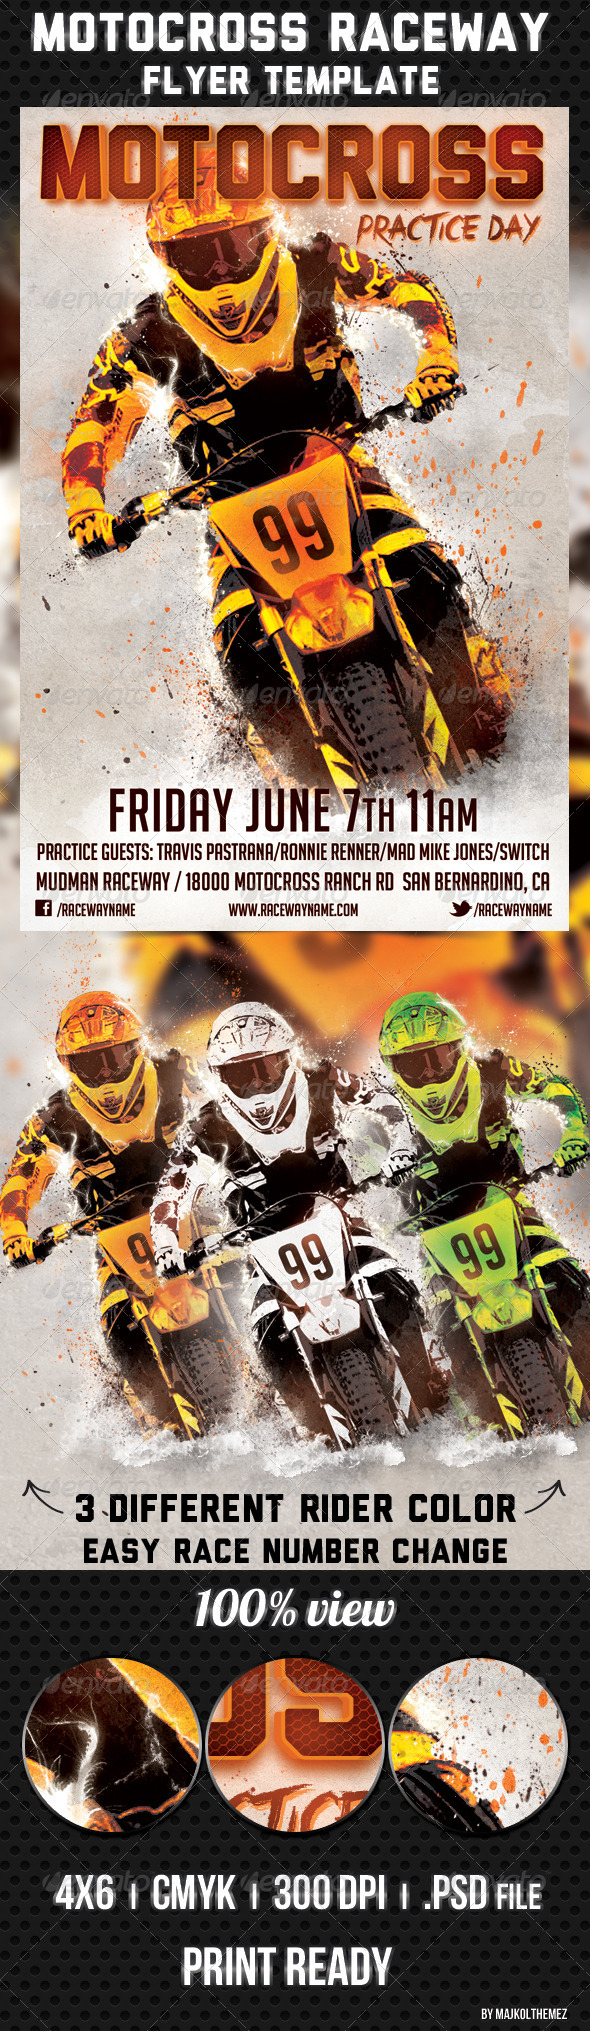 Motocross and Quad Raceway Flyer TemplateTrees Motocross and